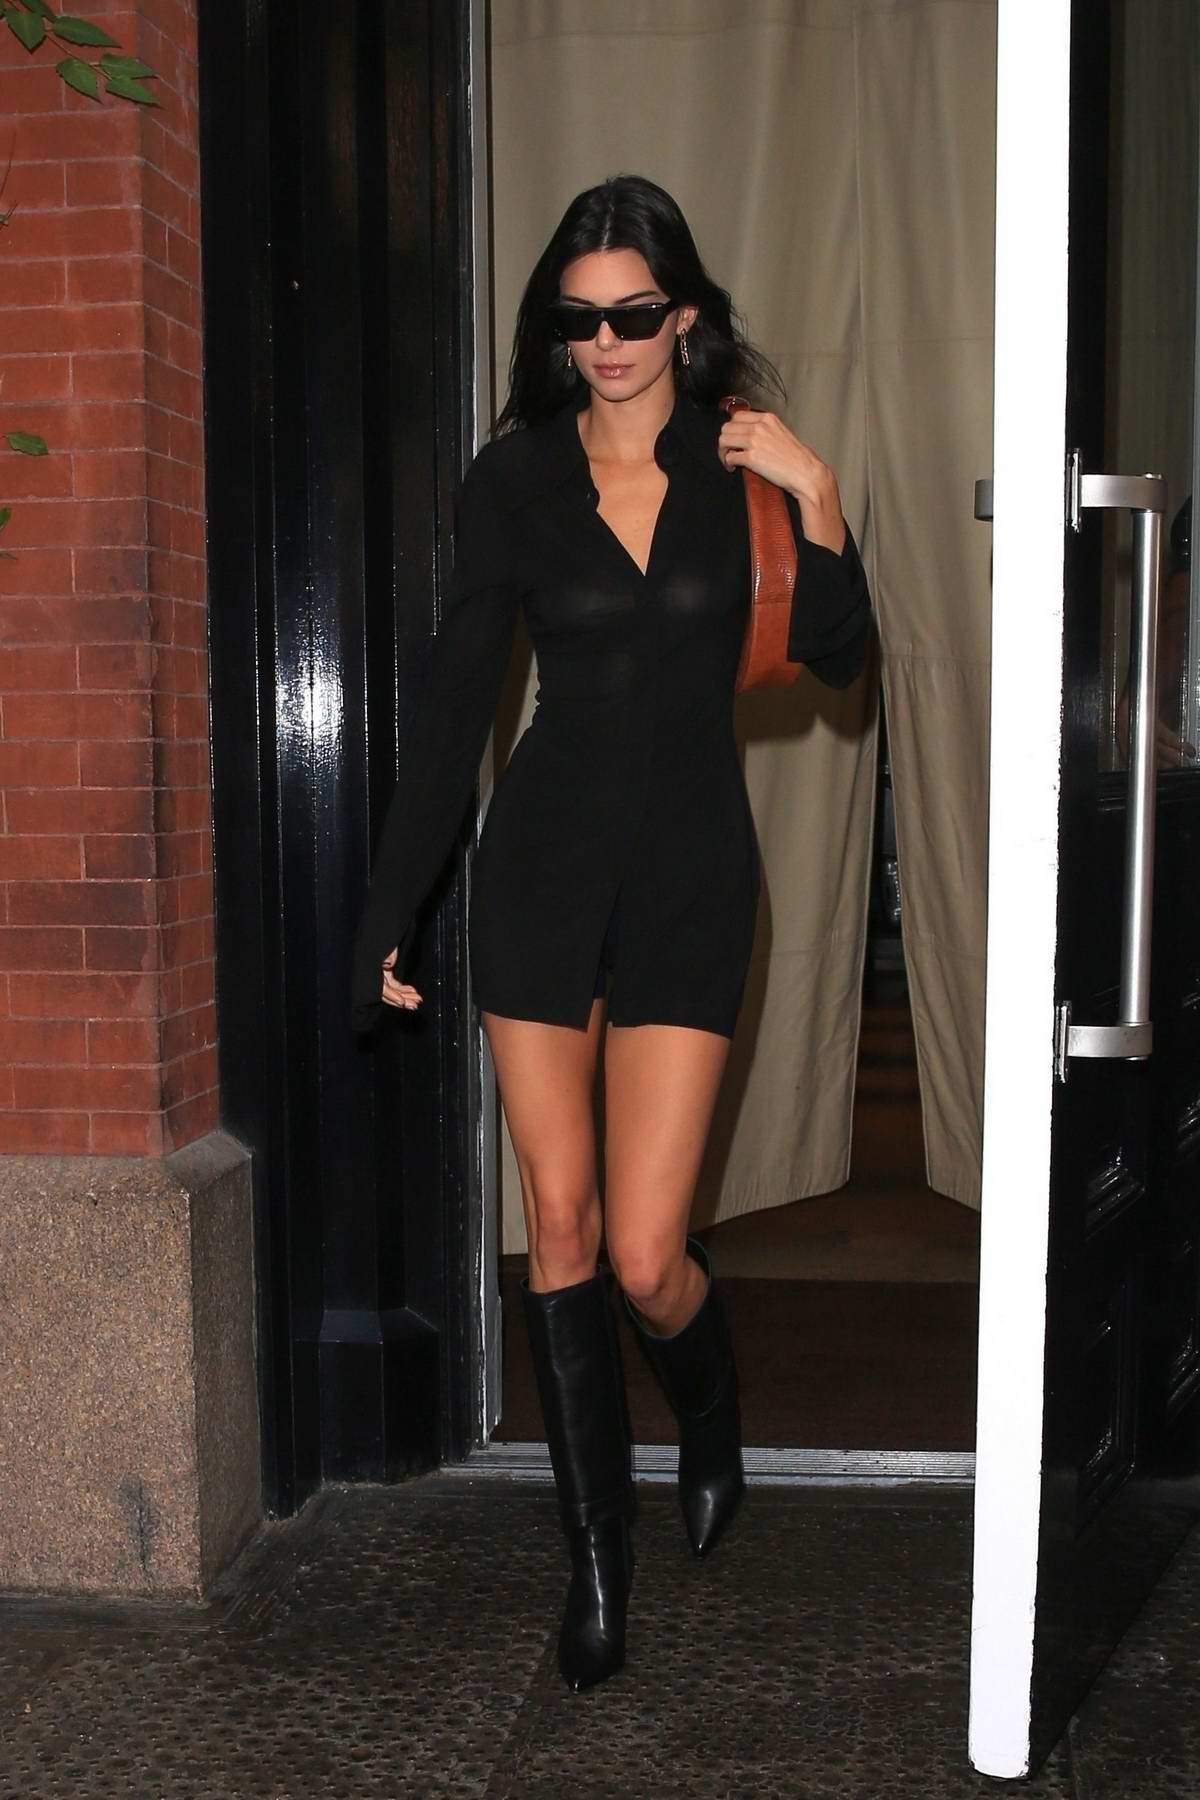 Kendall Jenner looks stunning in a short black dress as she leaves the Mercer Hotel in New York City